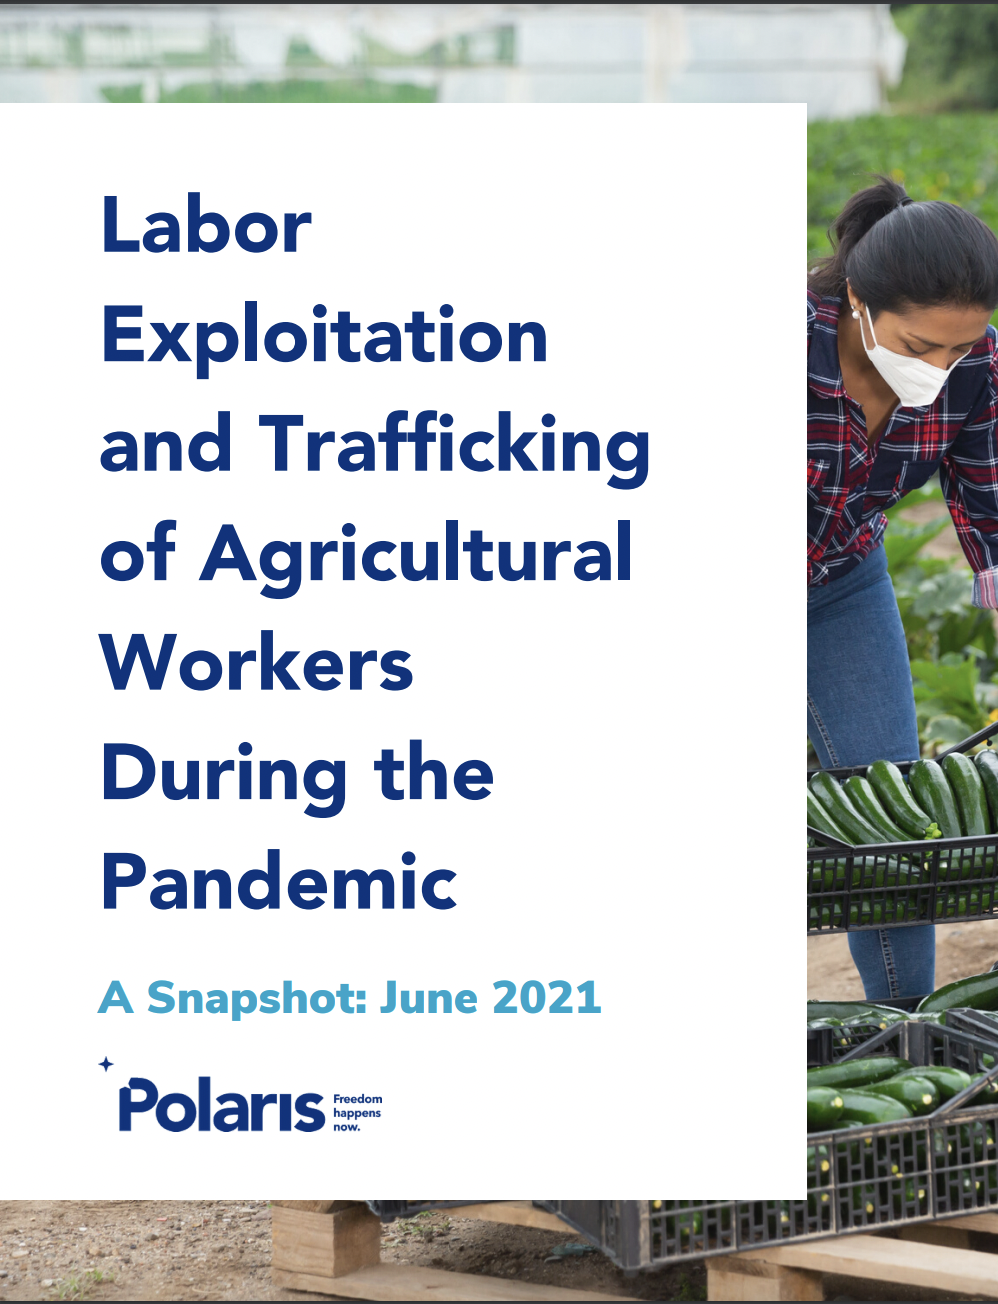 Labor Exploitation and Trafficking of Agricultural Workers During the Pandemic